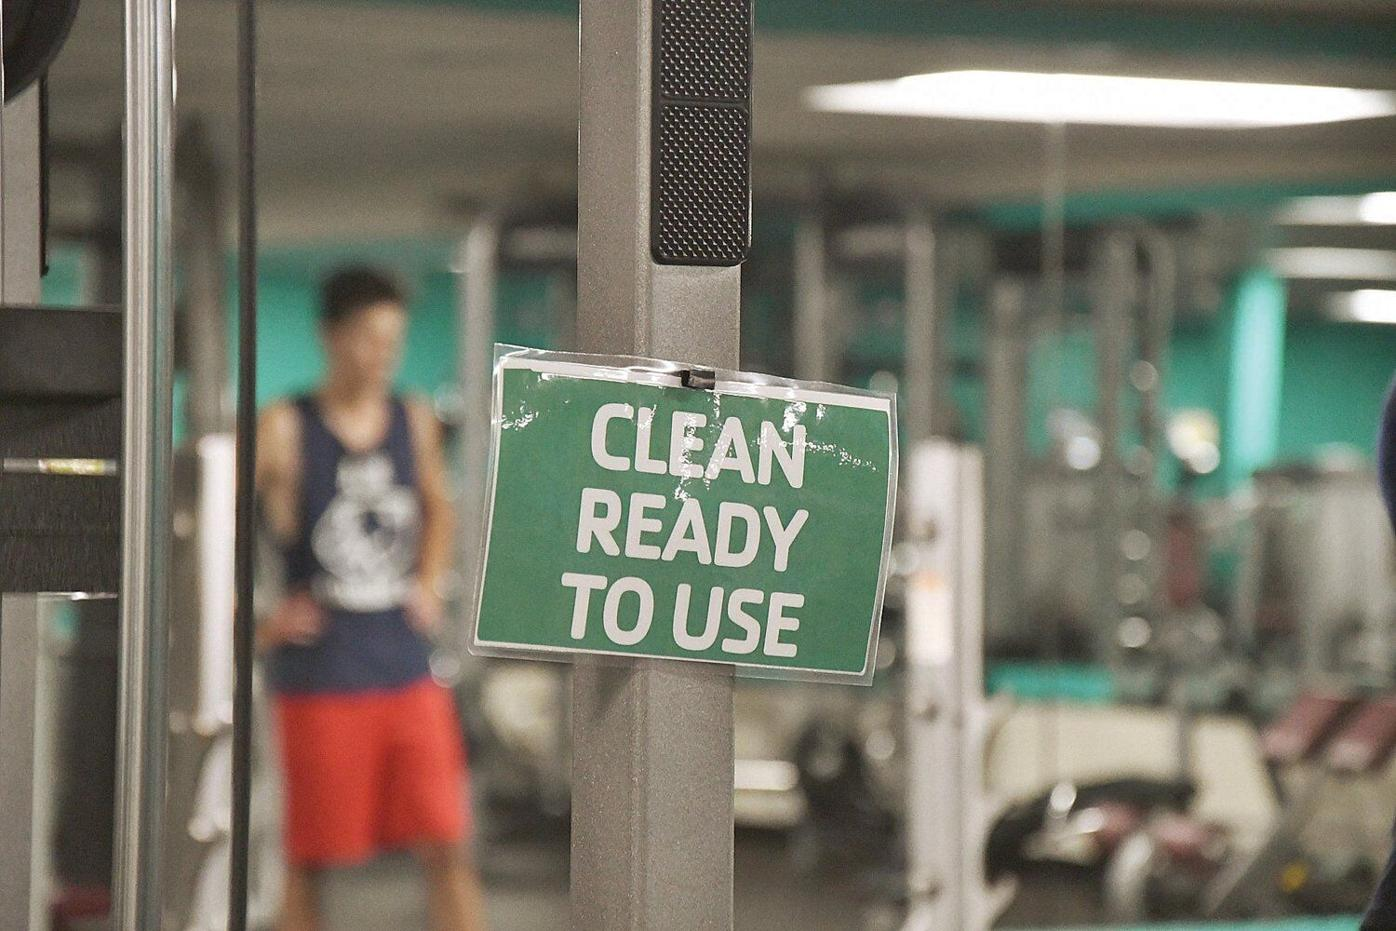 With phase 3 underway, Berkshire gyms getting back in shape